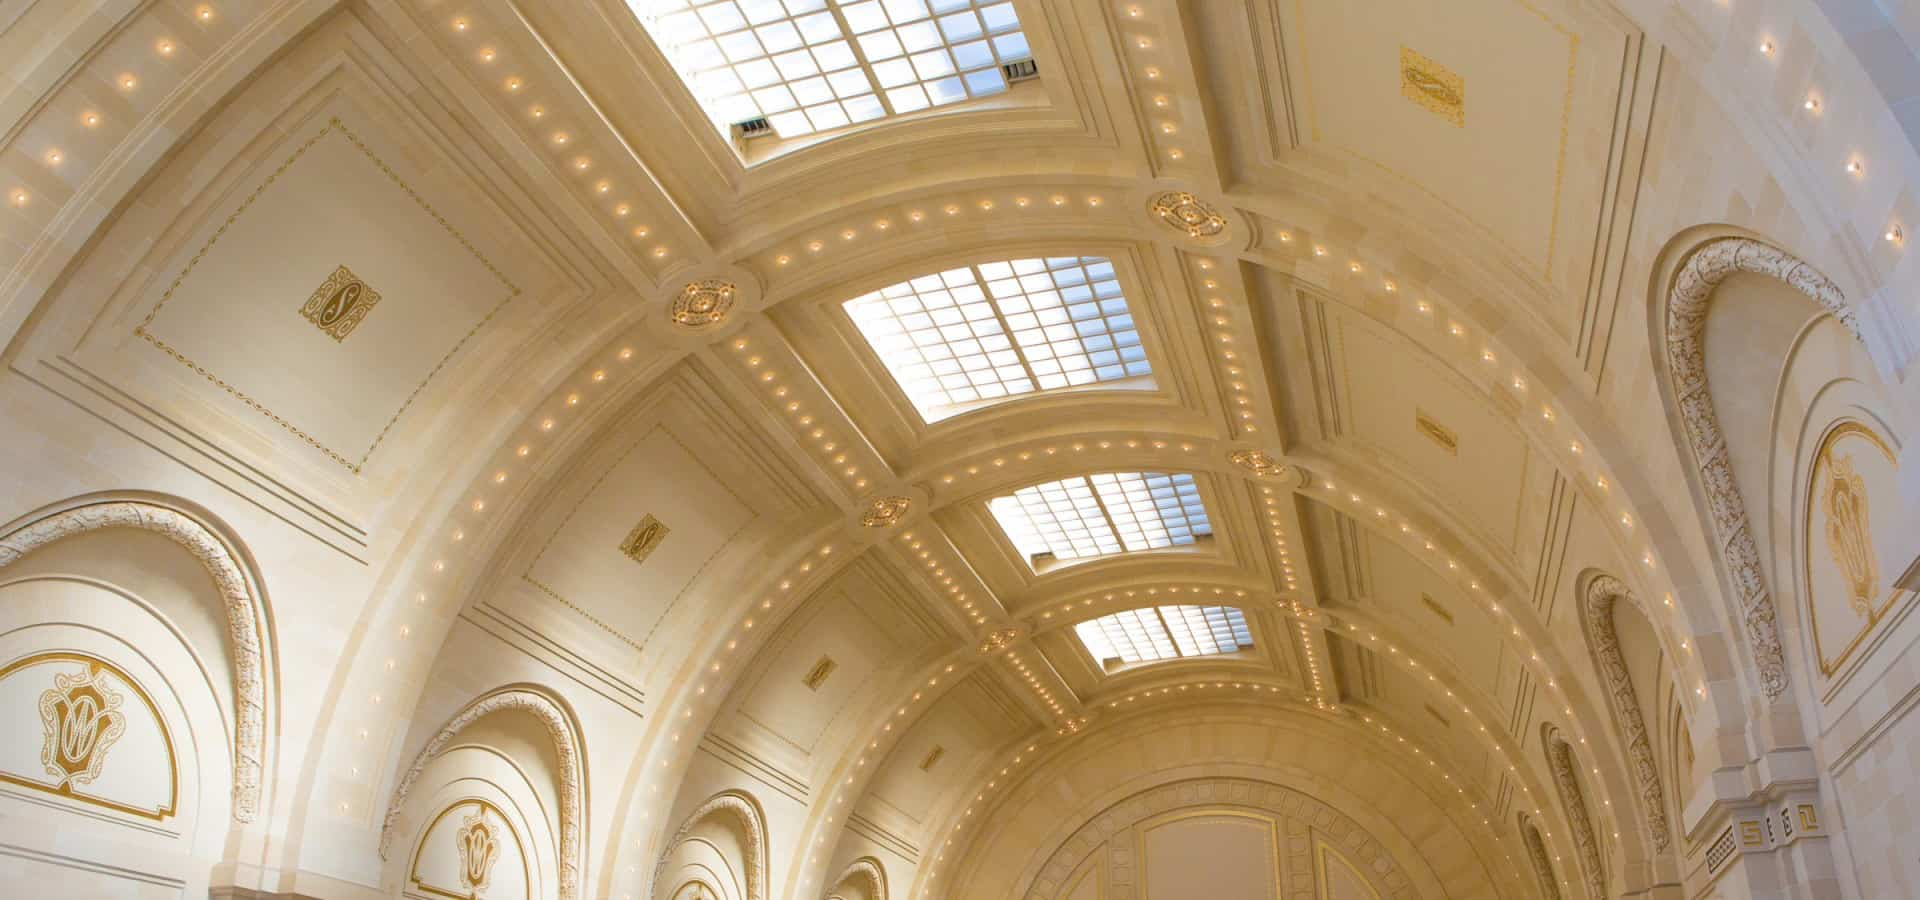 King Street Station. A Seattle Landmark not far from the office of Moure Law, experts in Maritime Law, Cruise Injury, and Litigation.